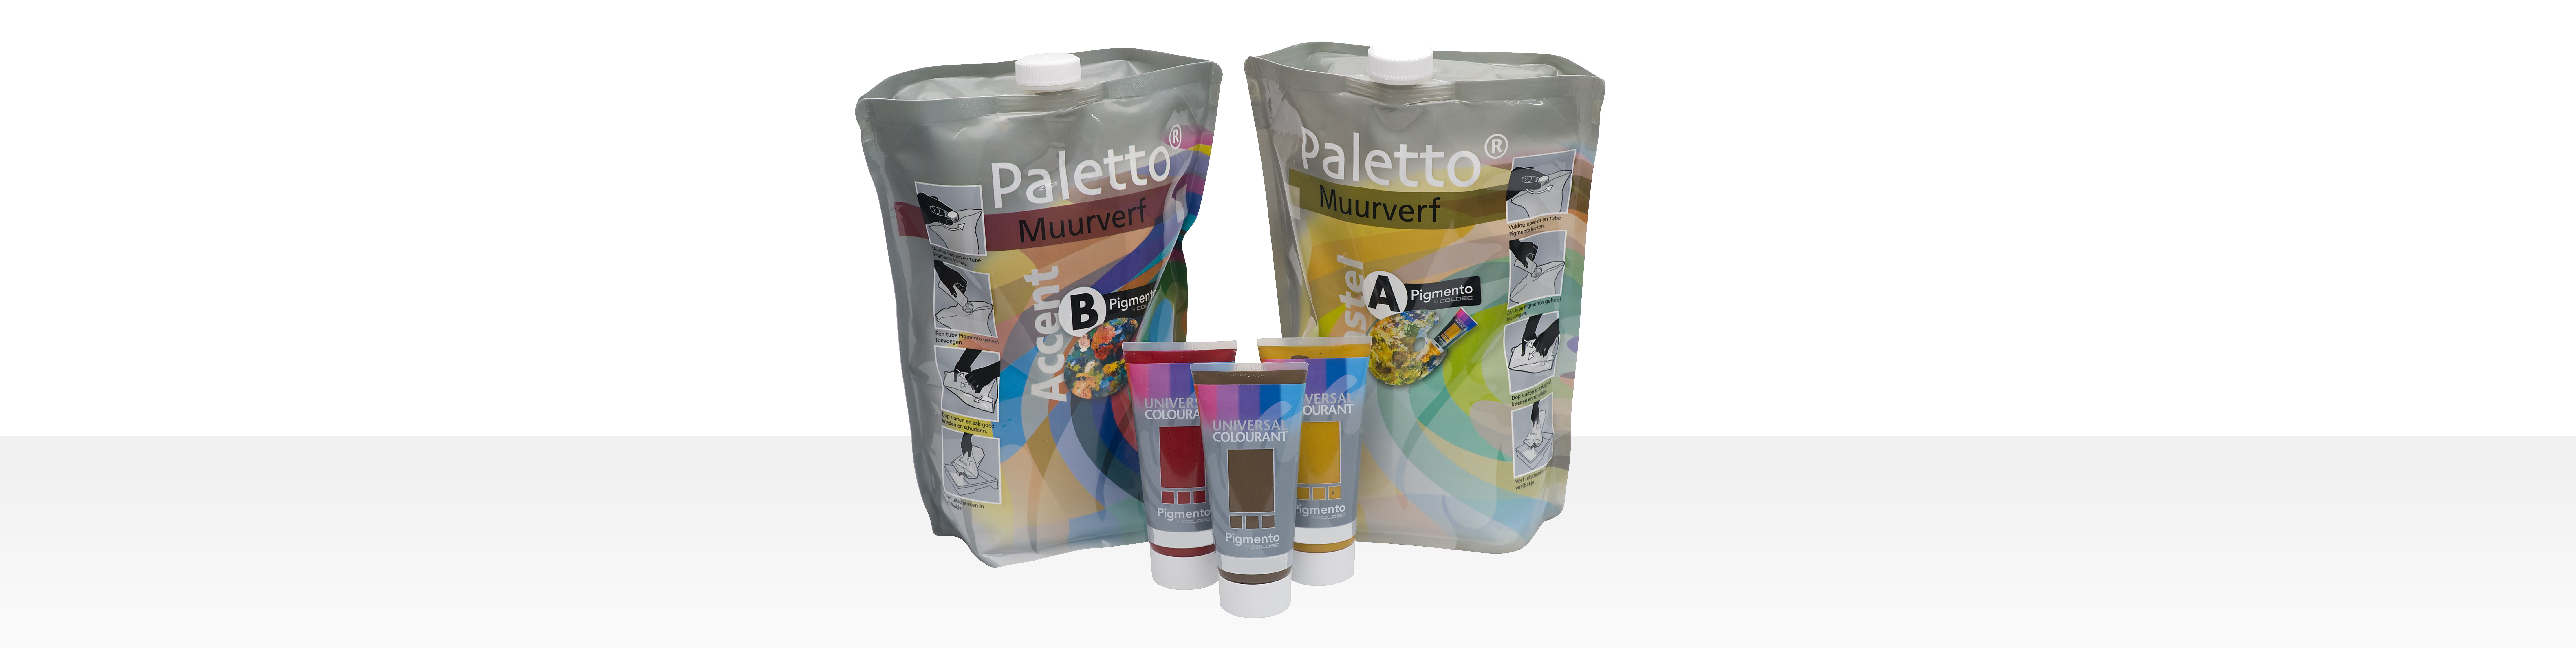 paletto-producten